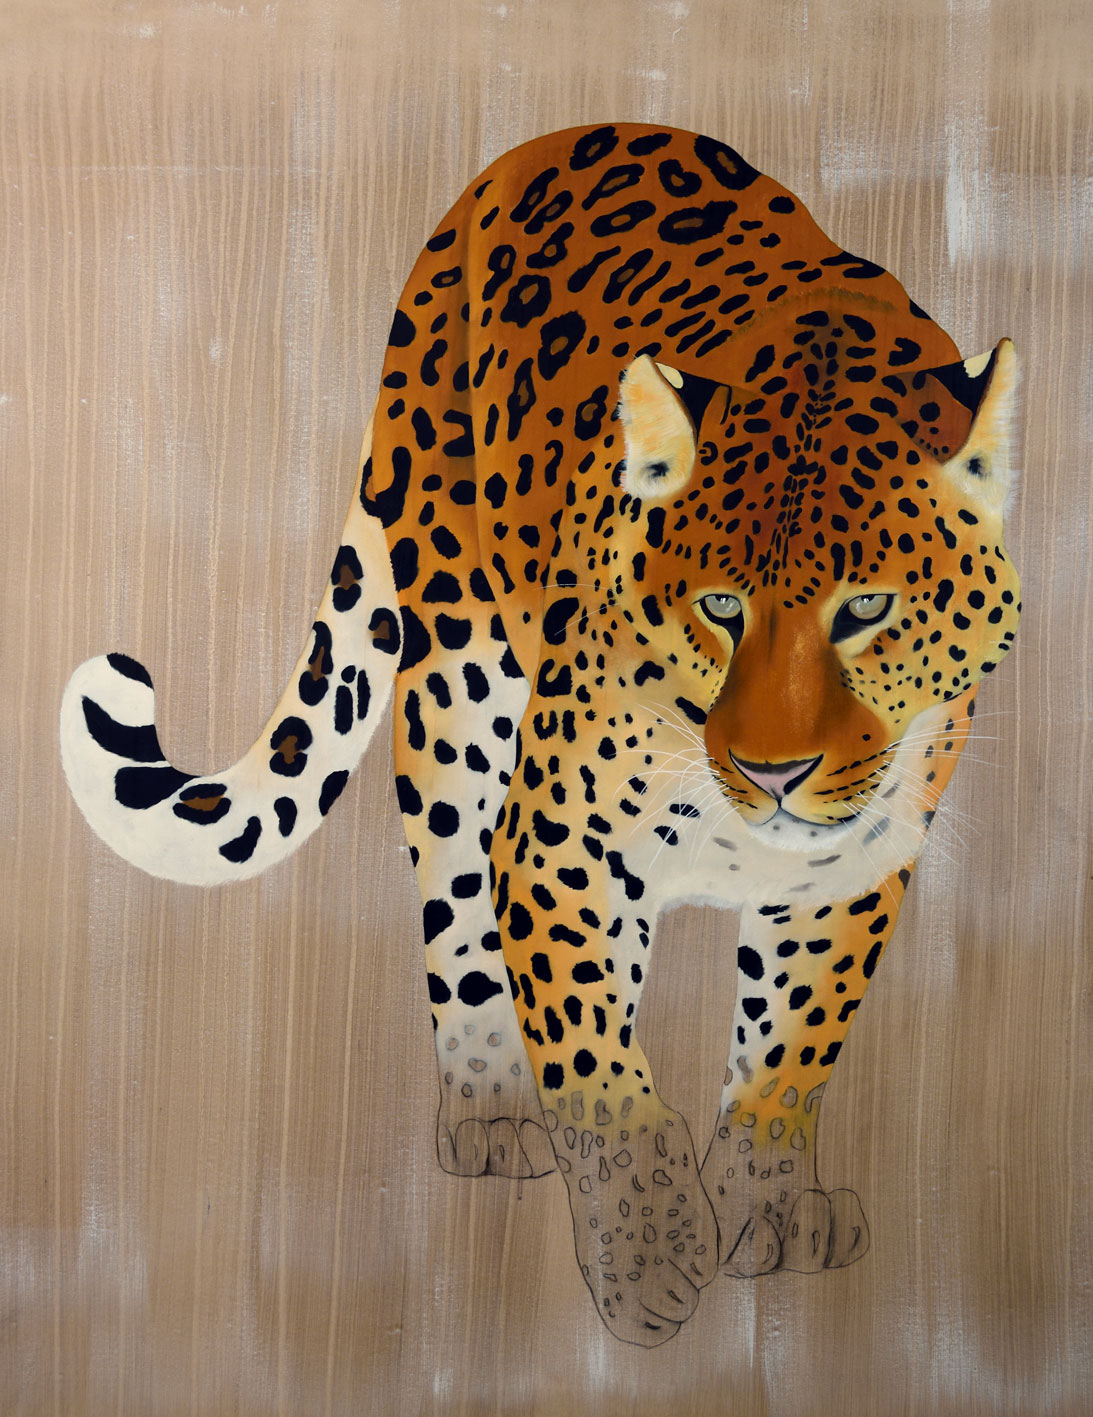 PANTHERA PARDUS ORIENTALIS panthera-pardus-orientalis-amur-leaopard-far-eastern-leopard-delete-threatened-thierry-bisch-endangered-extinction Animal painting by Thierry Bisch pets wildlife artist painter canvas art decoration